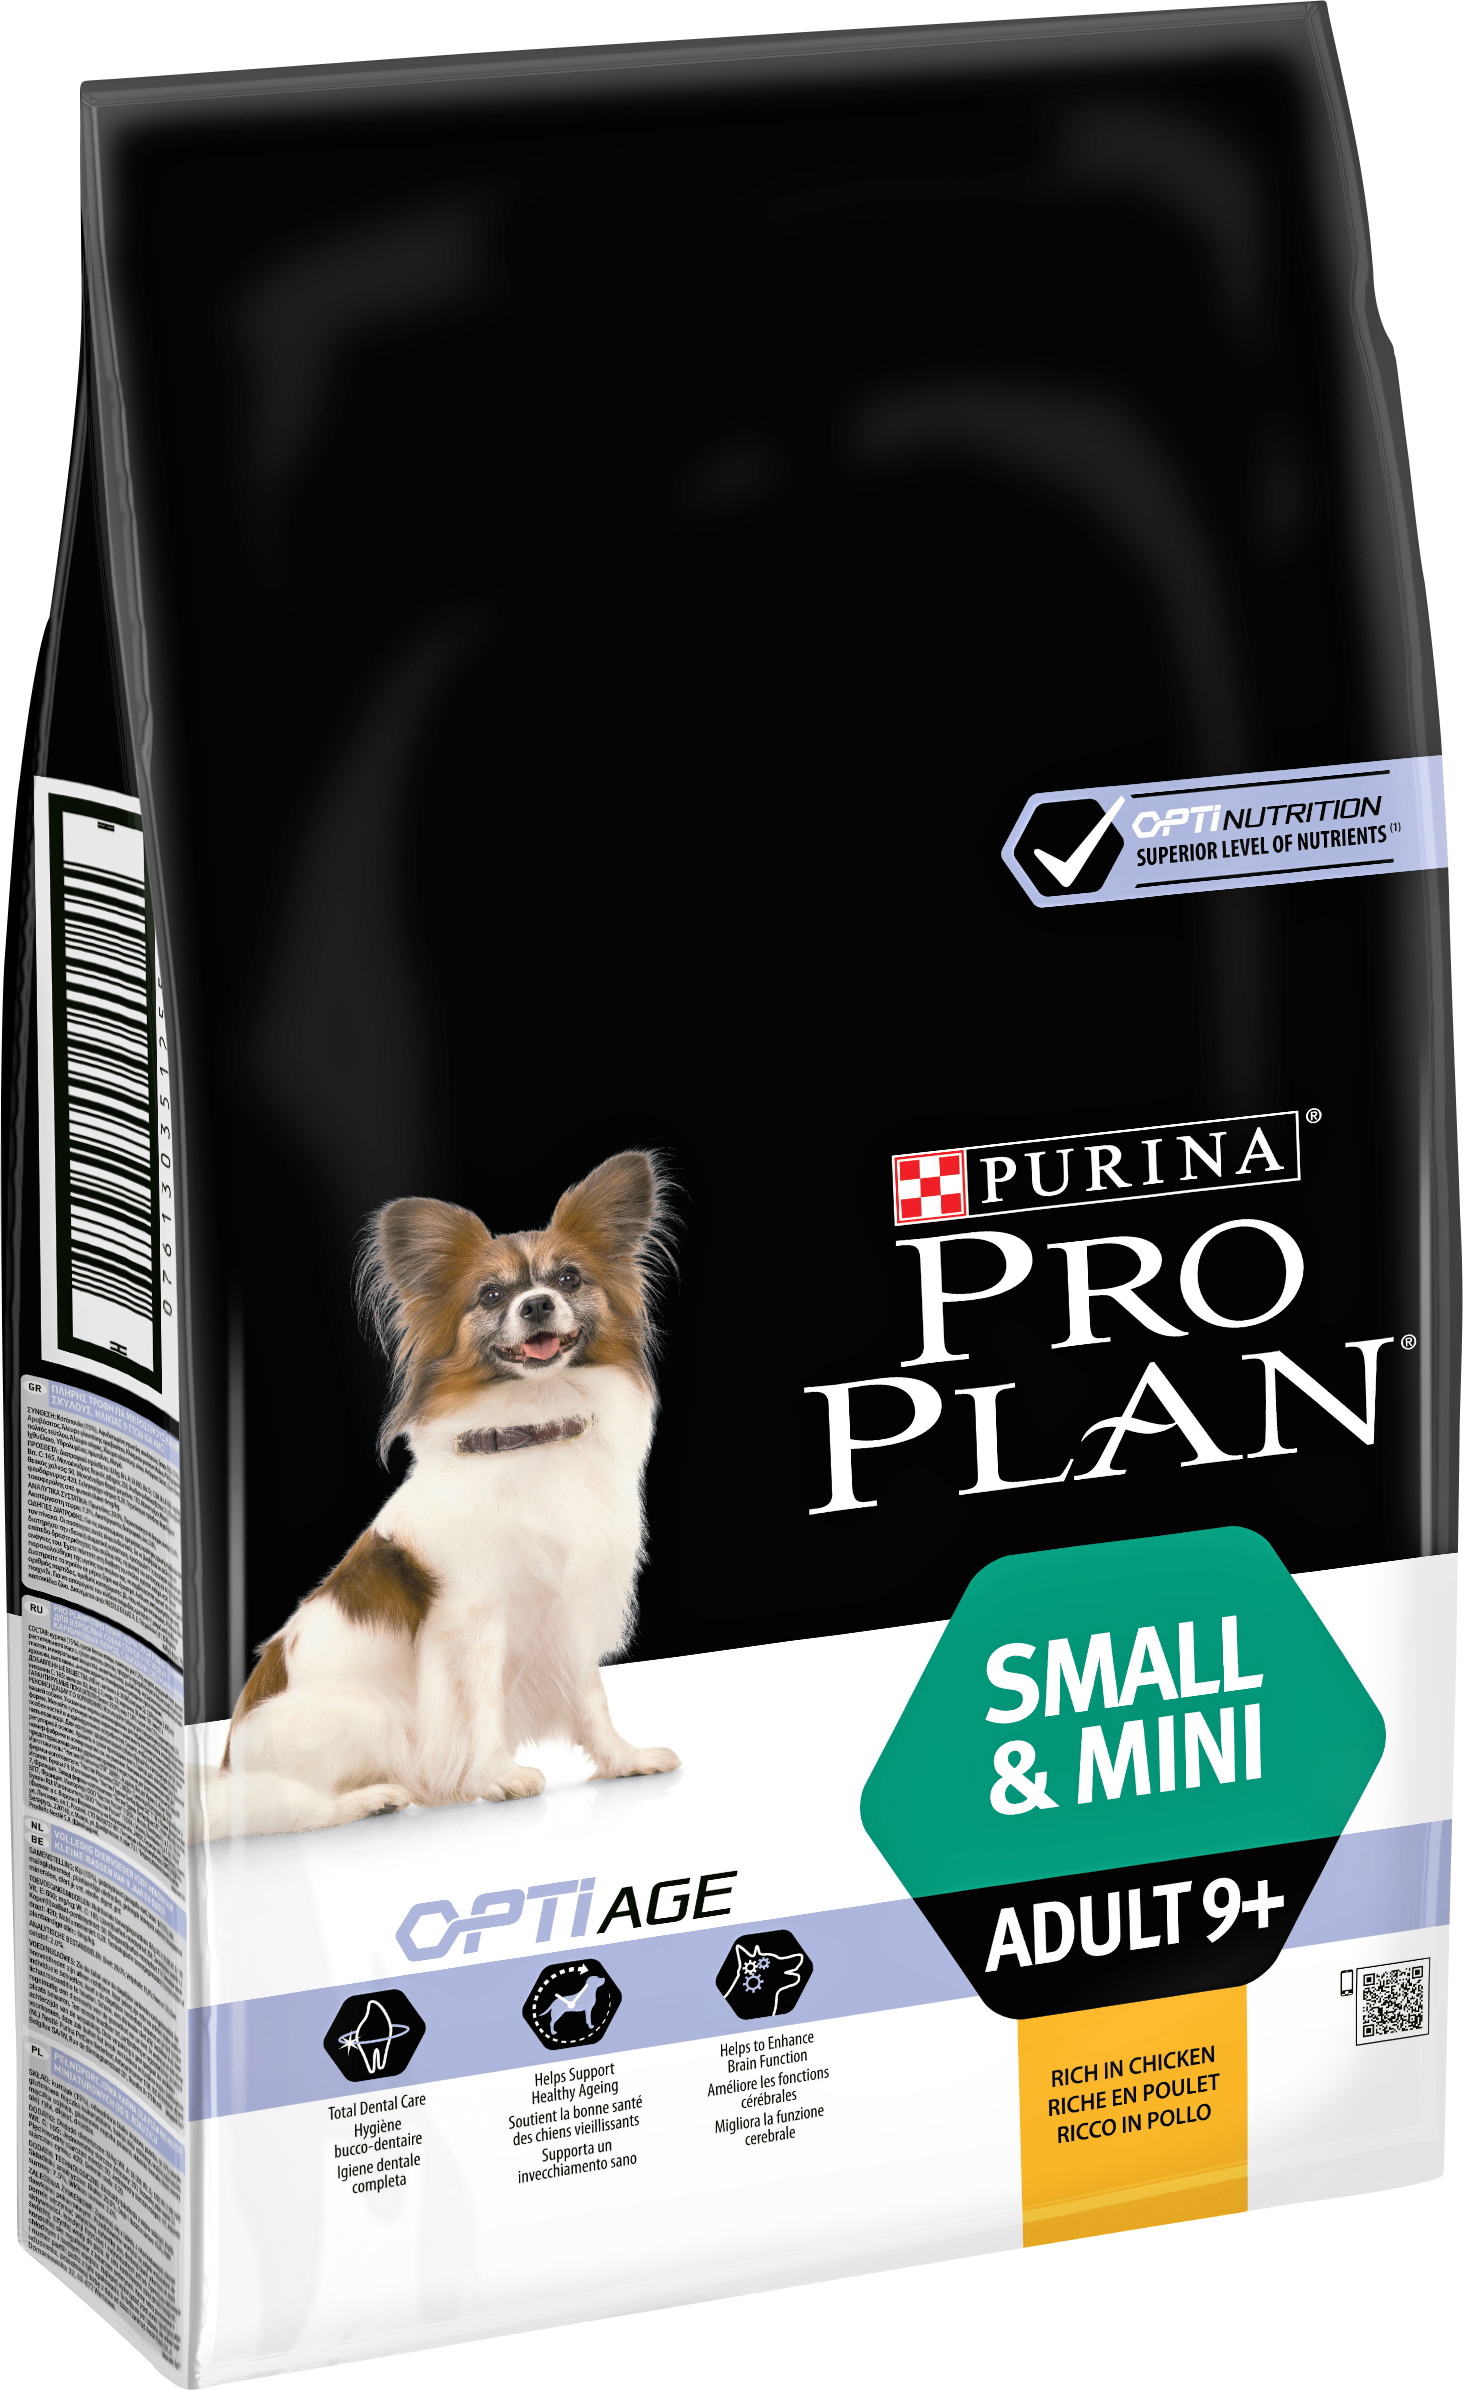 Hundfoder Pro Plan Small & Mini Adult 9+, 7 kg